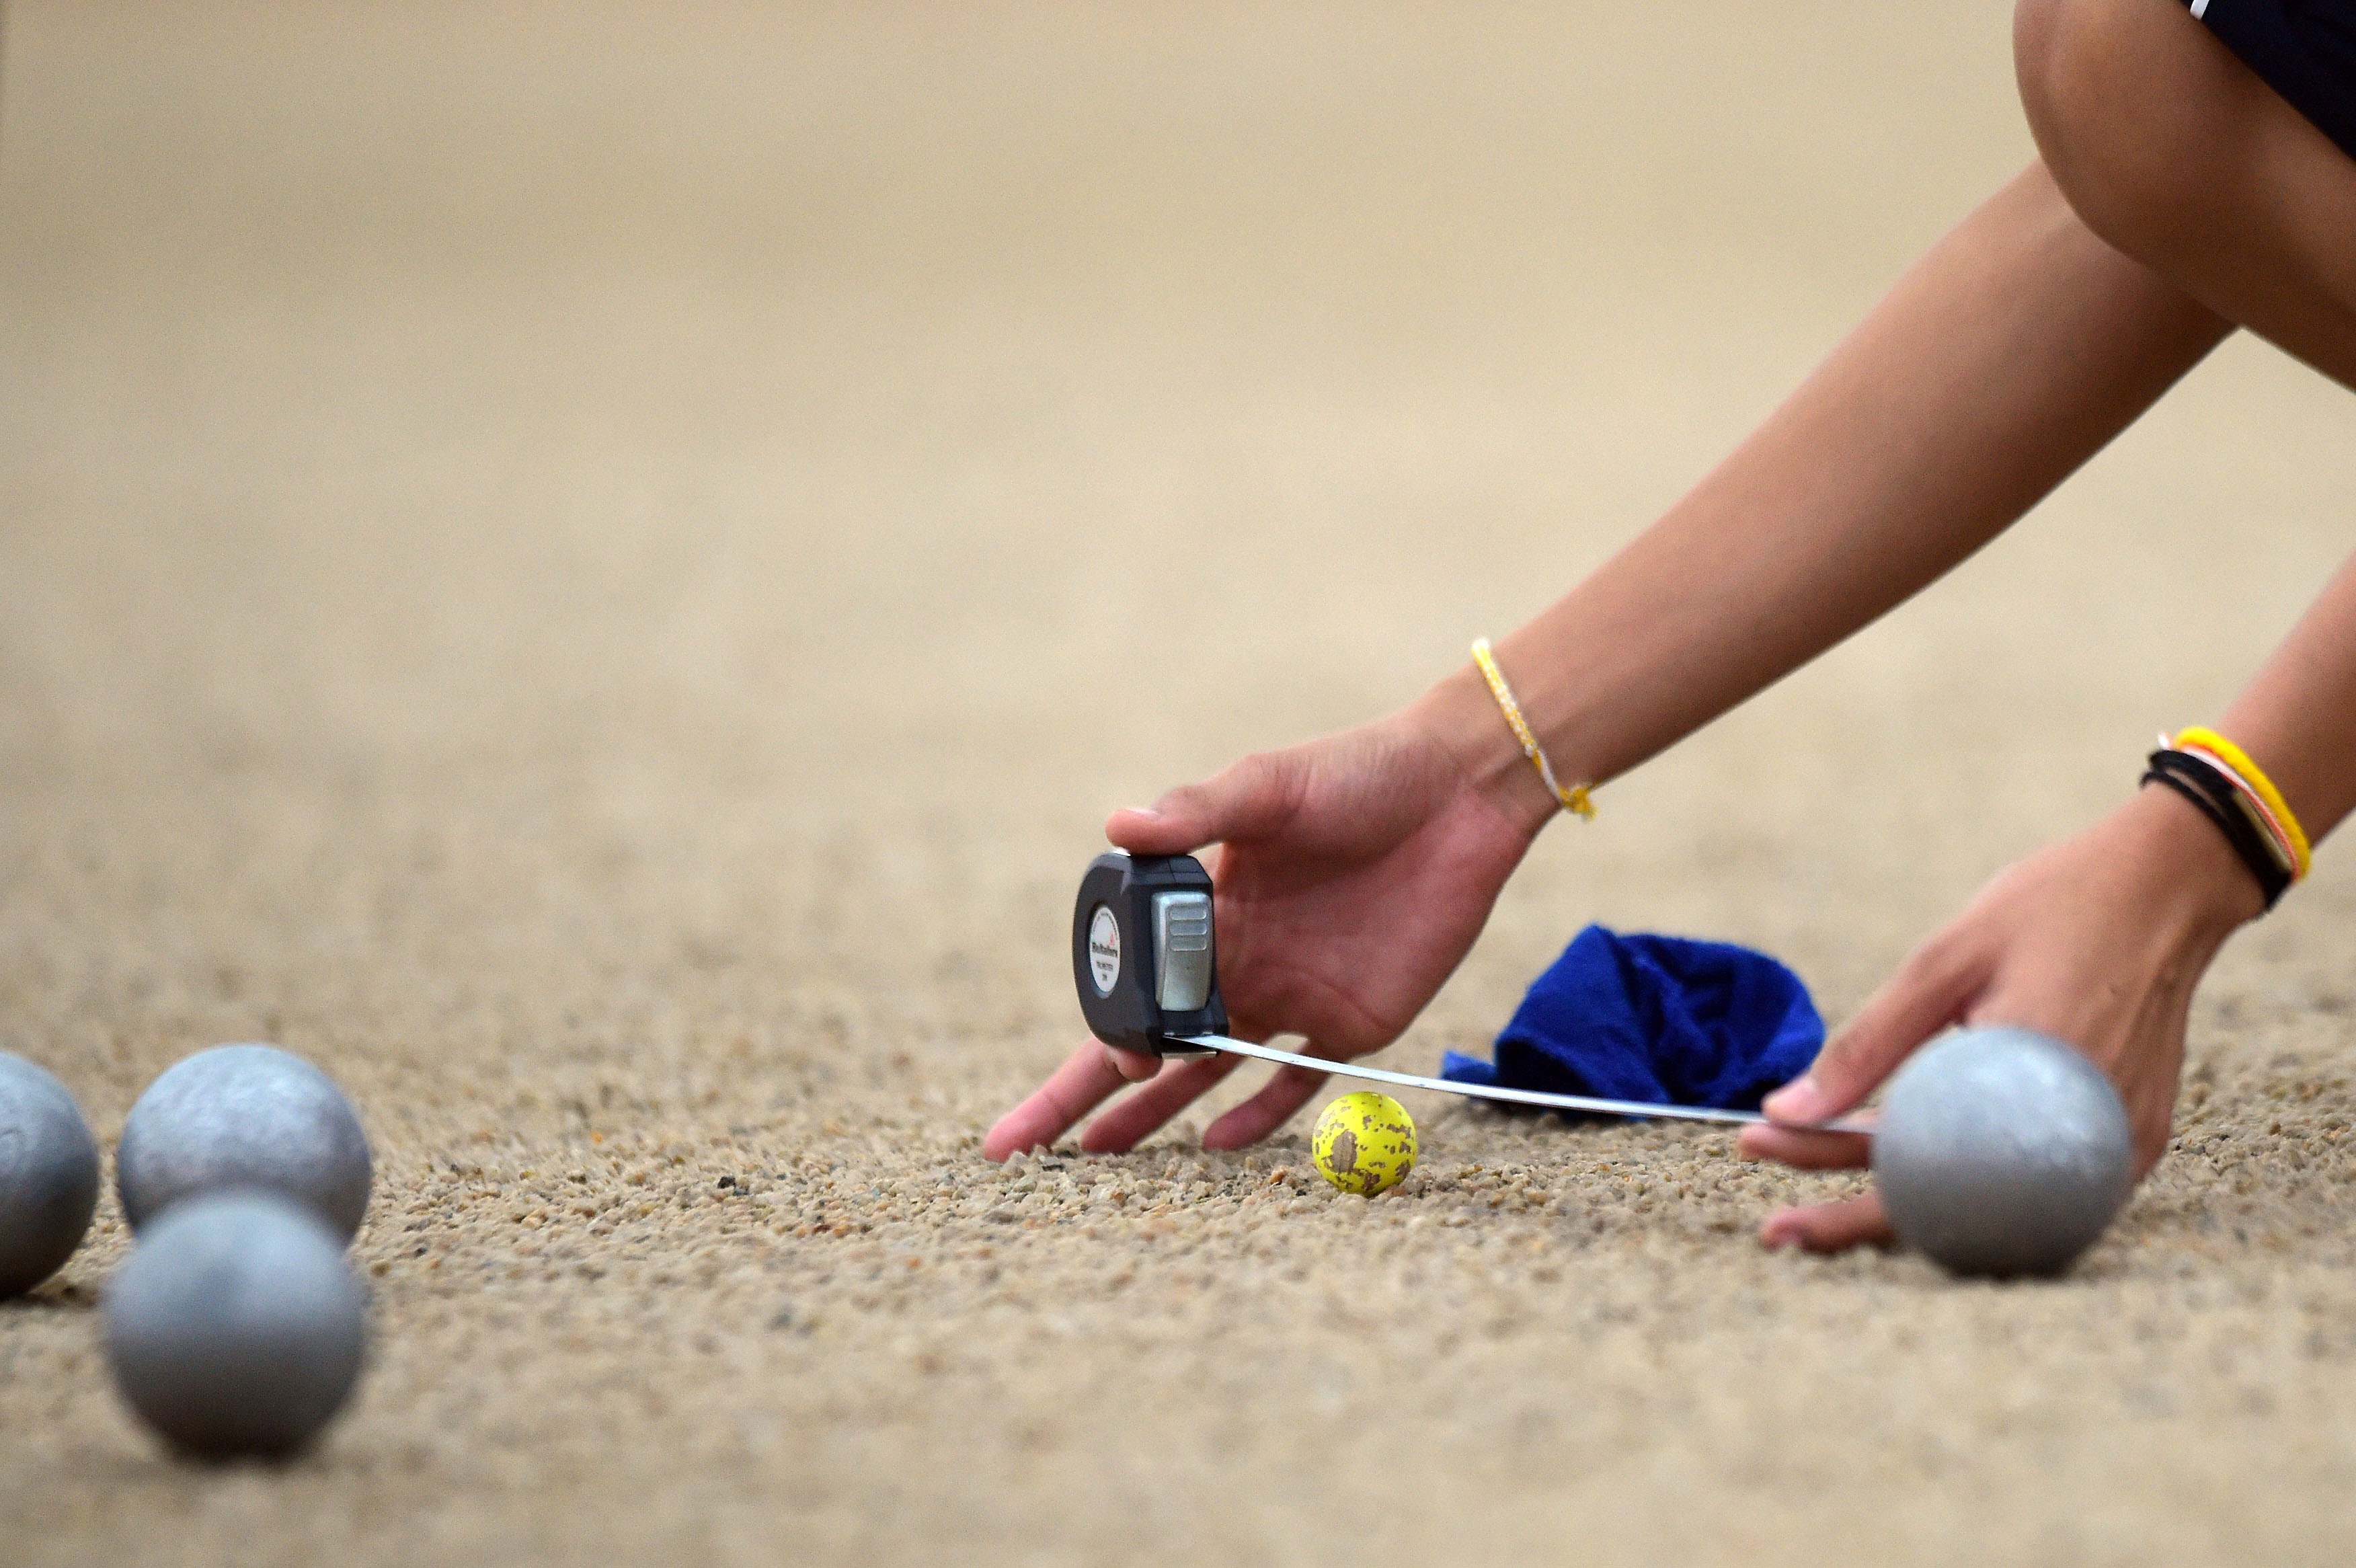 FILE - This Monday, June 8, 2015 file photo shows Bovilak Thepphakan of Laos measuring the distance between the cochonnet and a boule in the Woman's Petanque Singles semifinal match at the SEA Games in Singapore. The sport of boules has launched its bid t